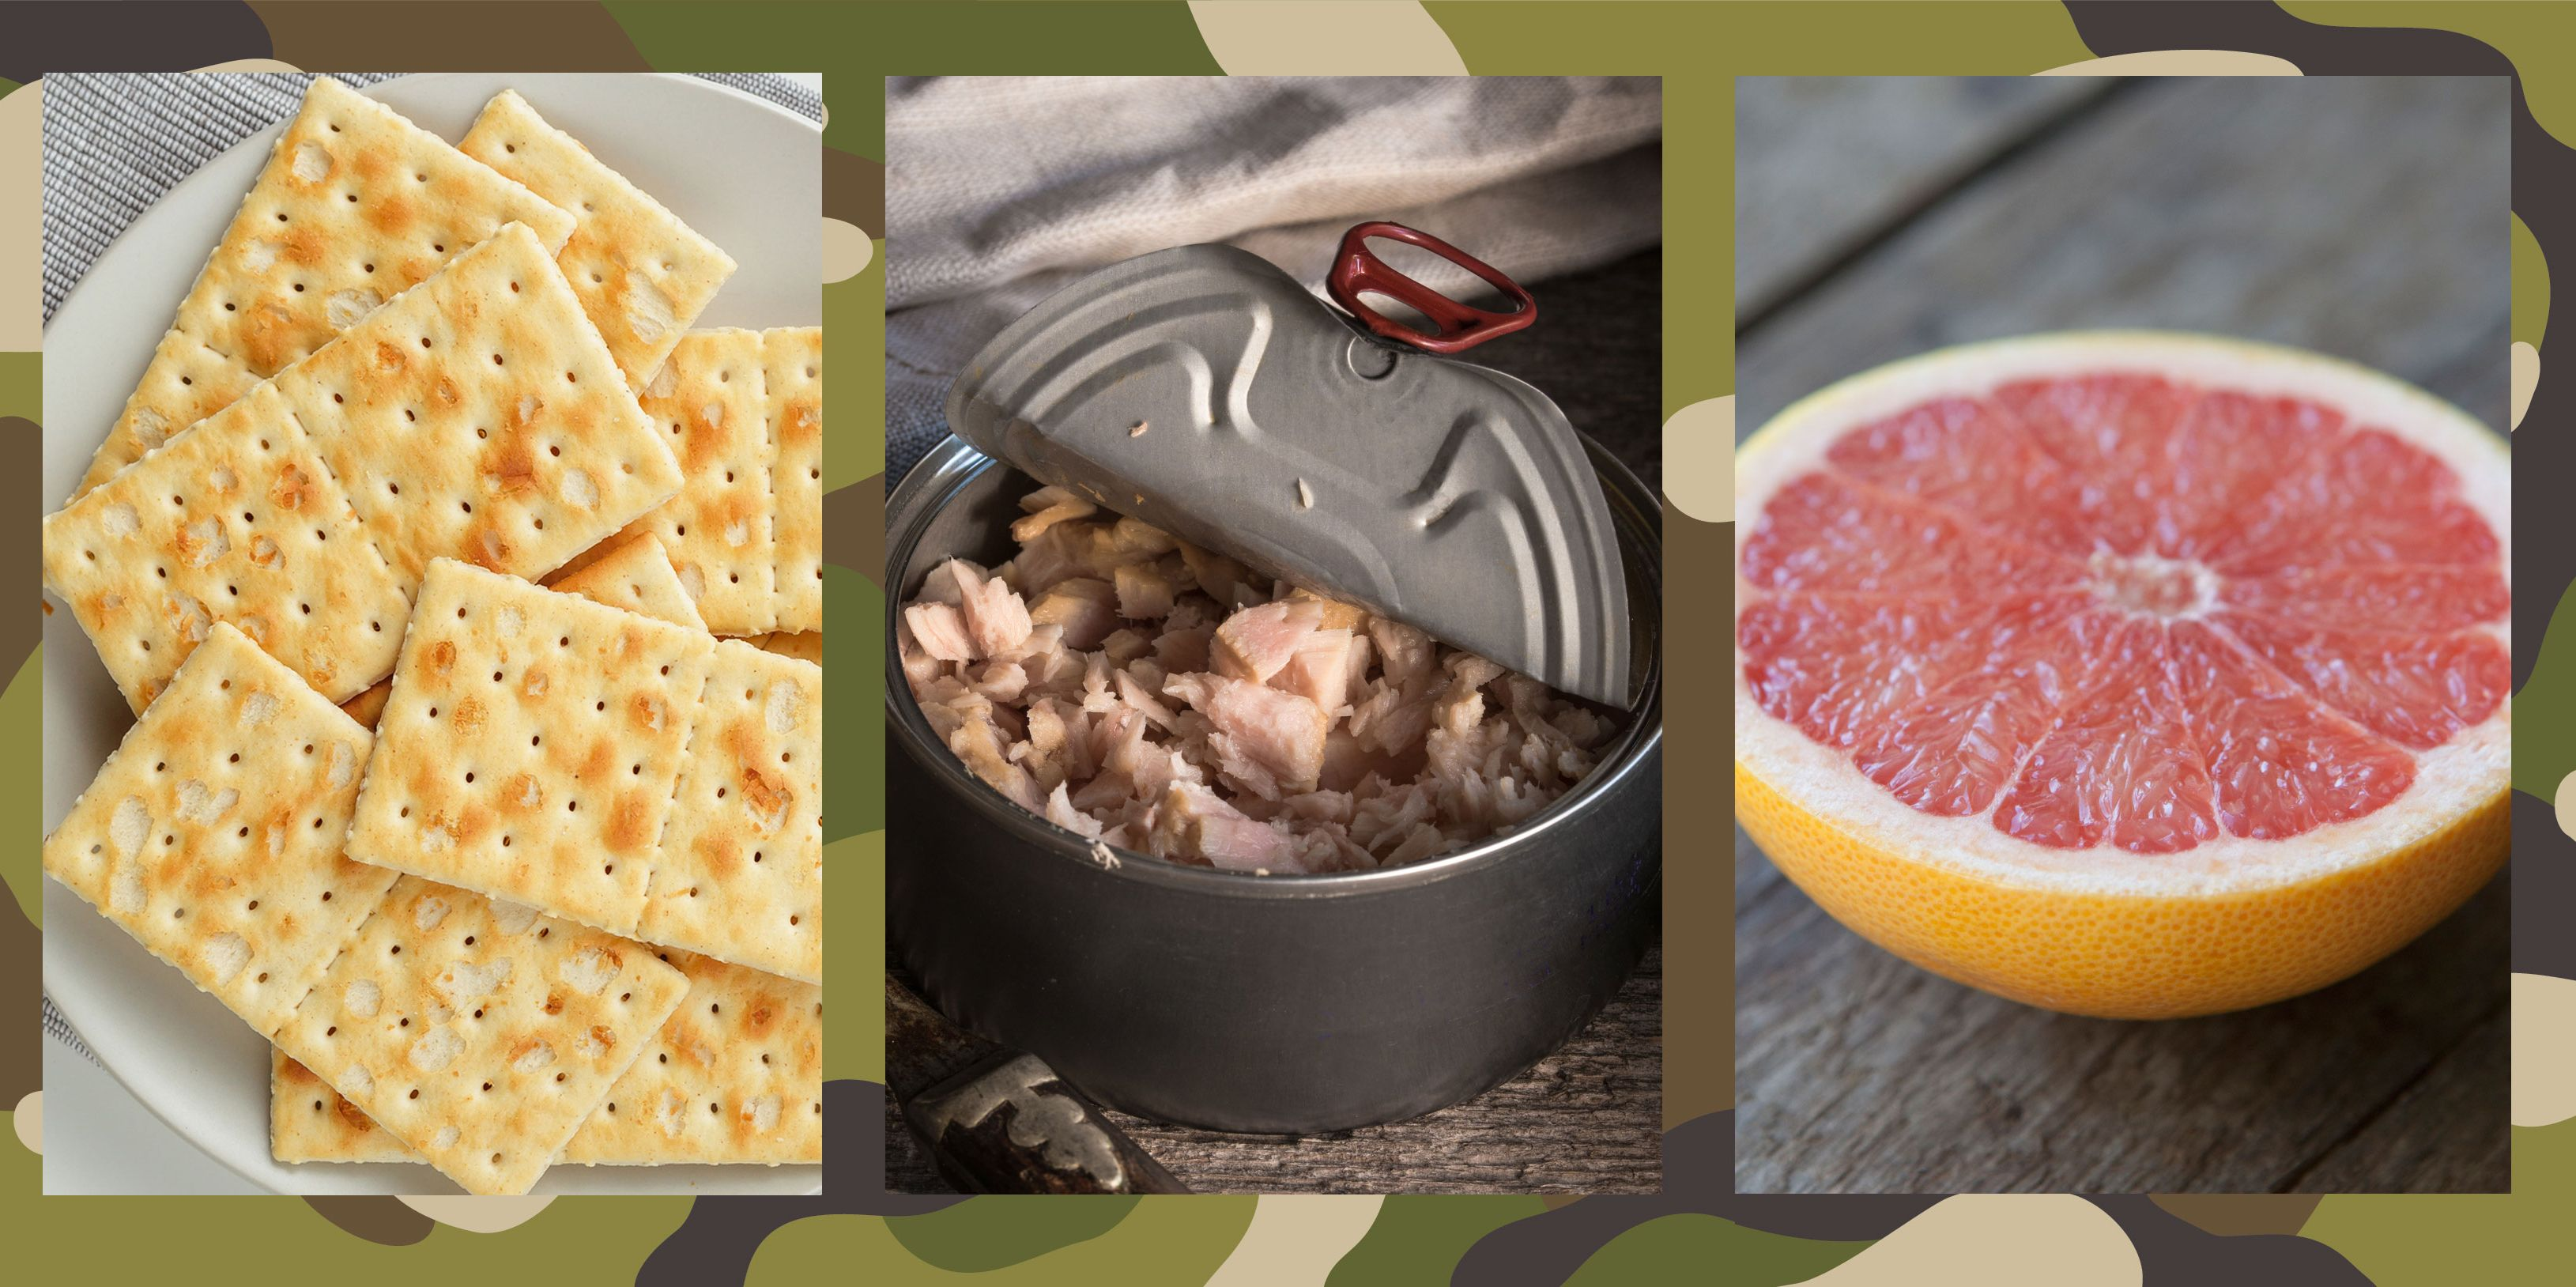 The Military Diet Claims It Can Help You Lose 10 Pounds in 3 Days